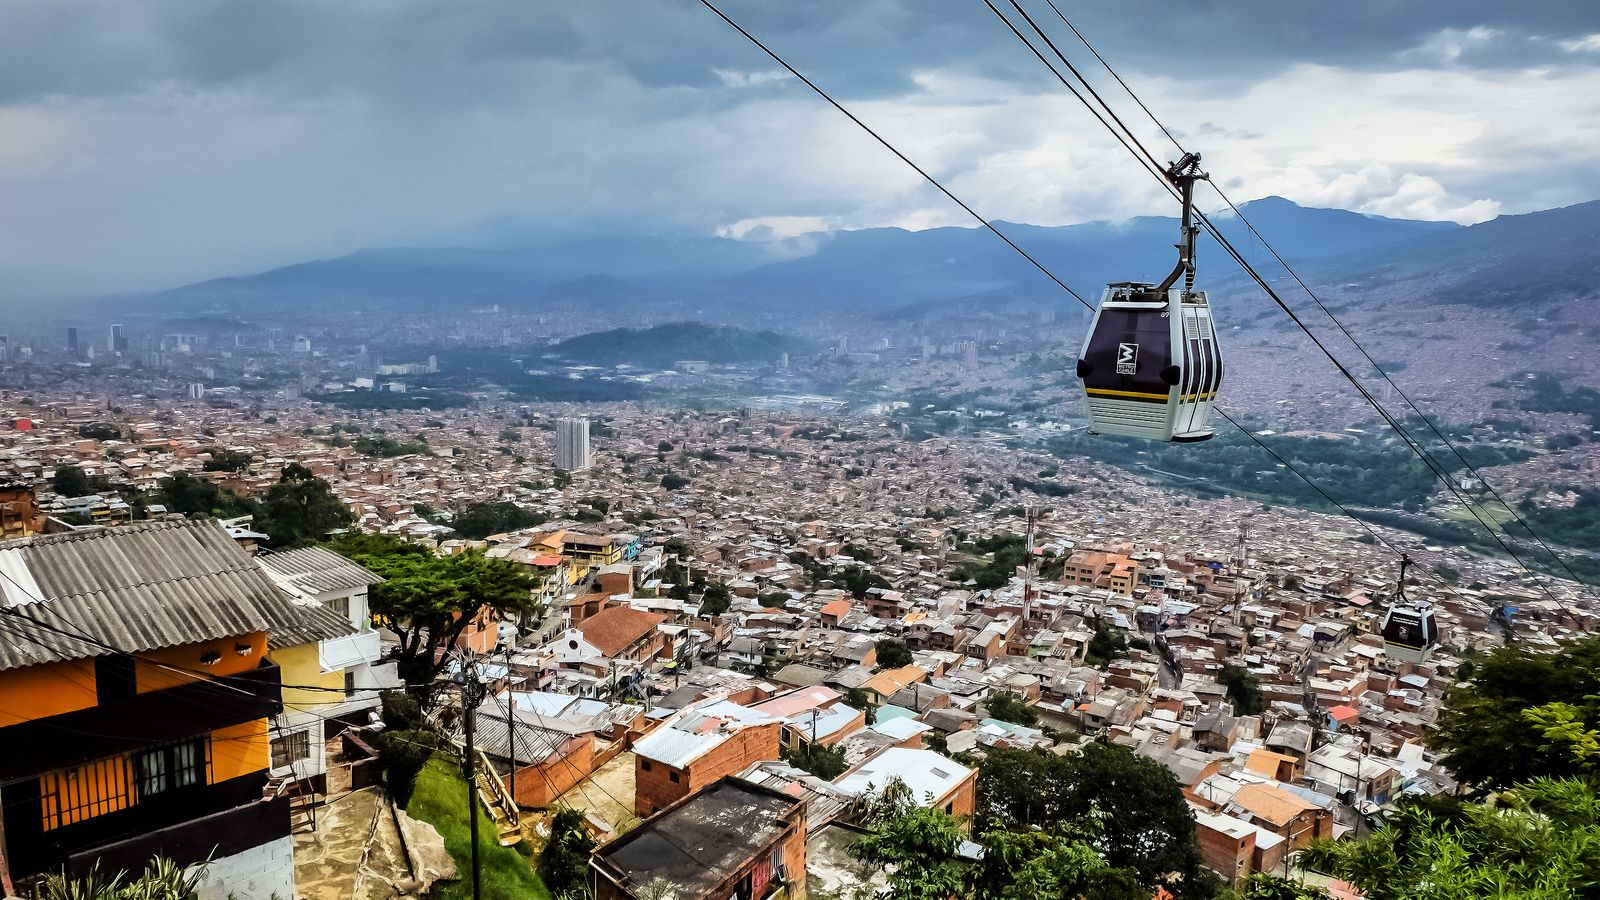 500px Photo ID: 110891847 - Metro lines at Medellin Colombia, not all of them overground, this one over air!